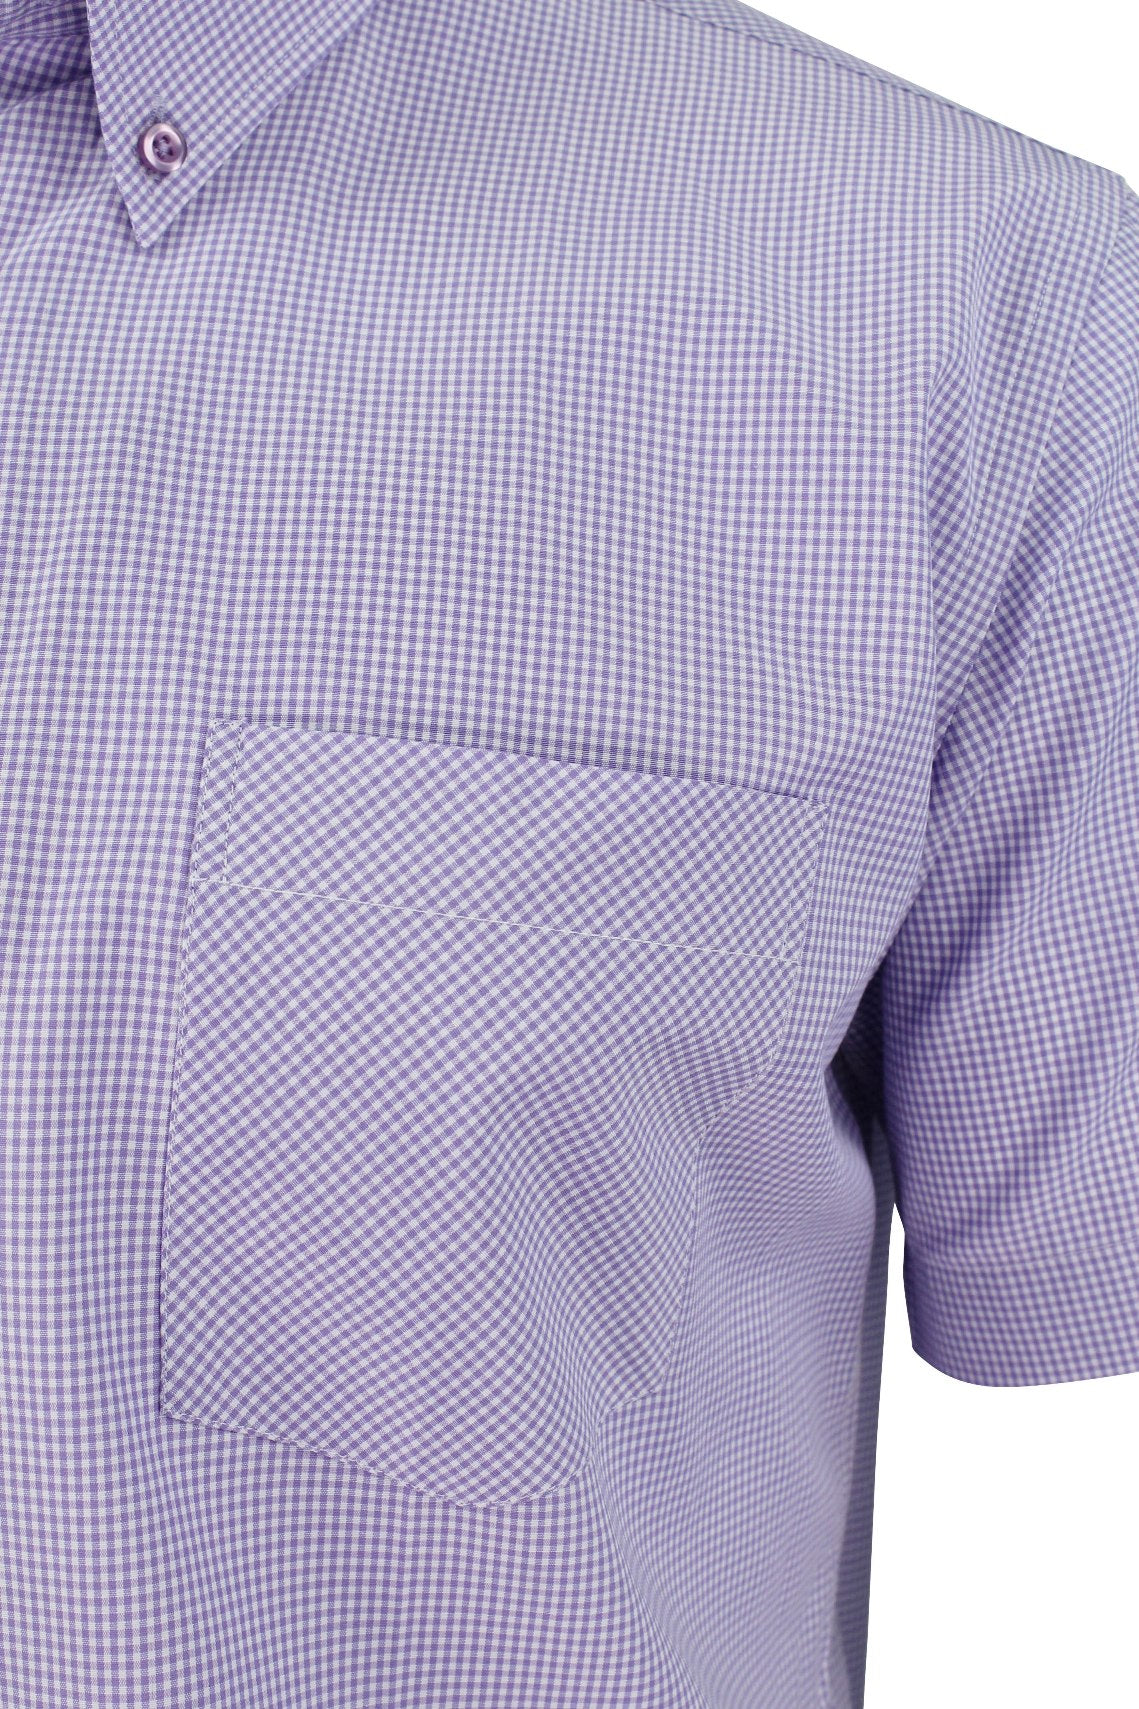 Mens Short Sleeved Shirt by Xact Clothing Micro Gingham Check_02_1510114_Lilac